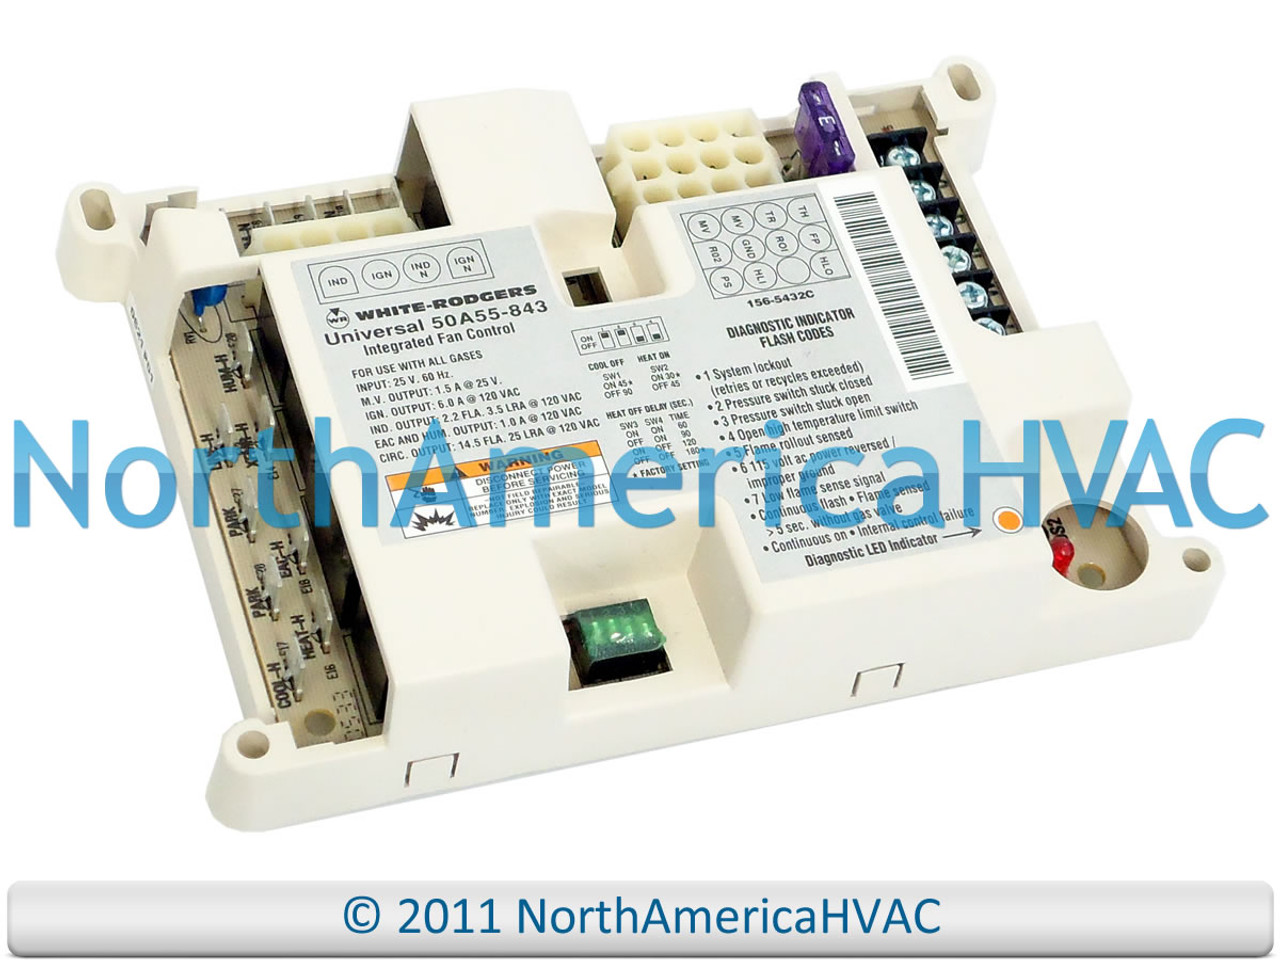 Luxaire York Coleman White Rodgers Furnace Control Board 50A50 241 031-01266-000